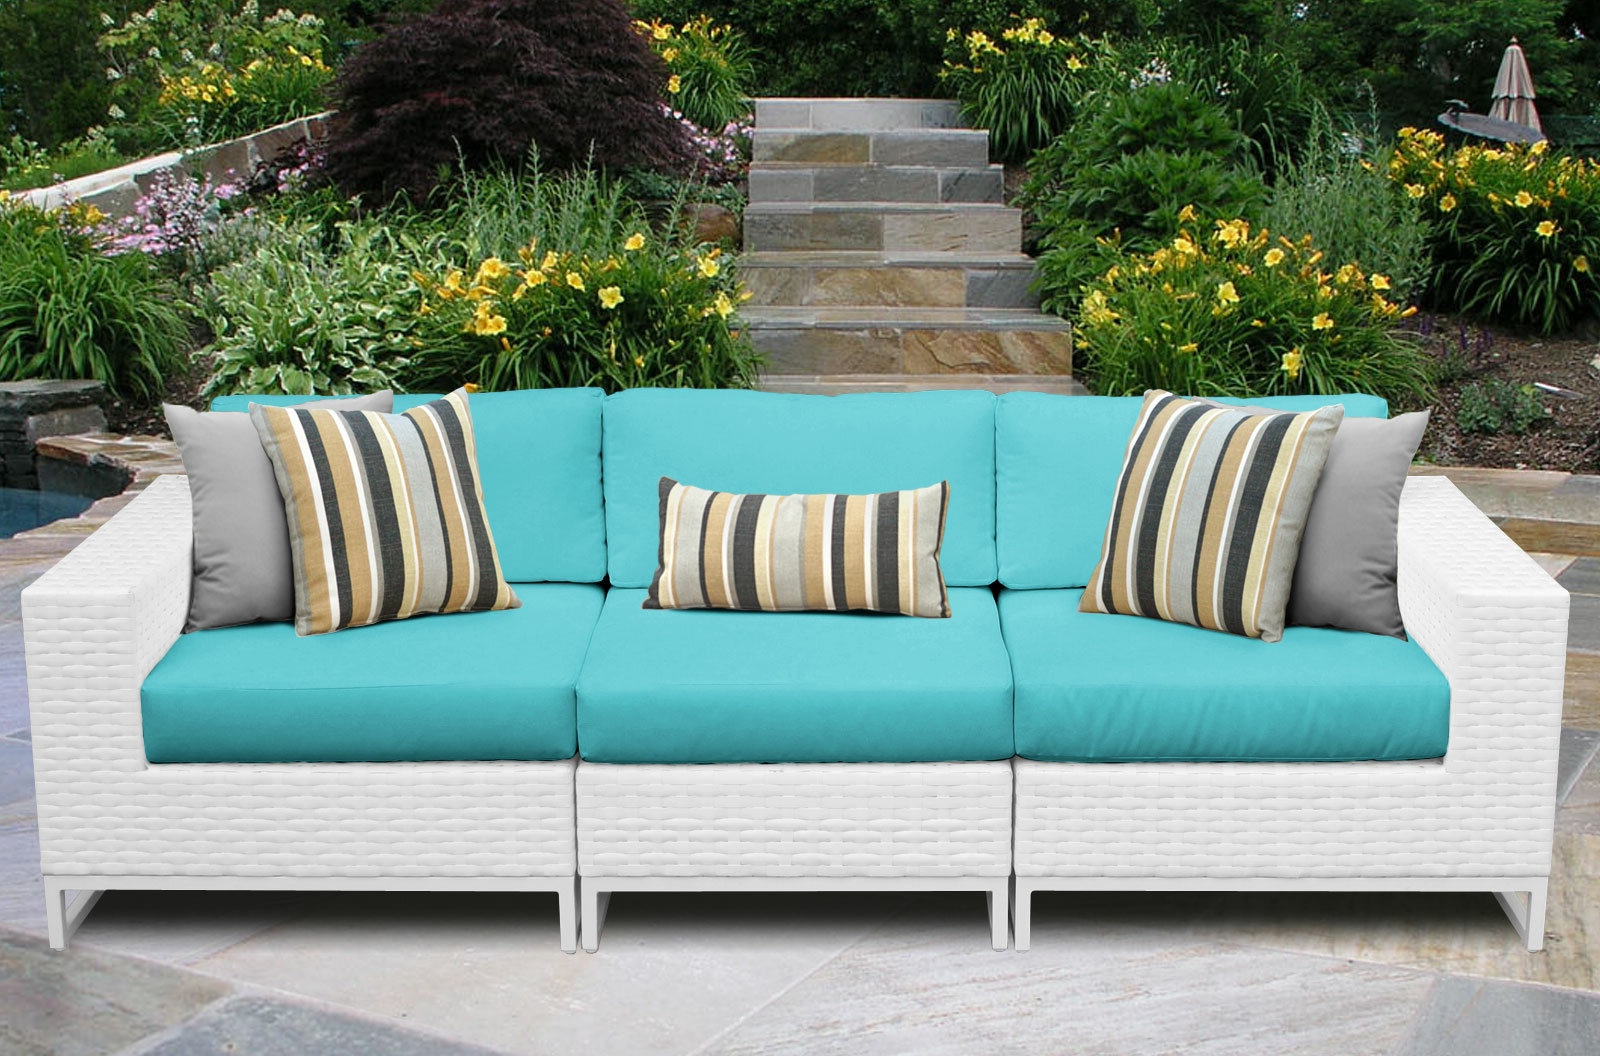 Widely Used Tegan Patio Sofas With Cushions Throughout Menifee Patio Sofa With Cushions (Gallery 21 of 25)